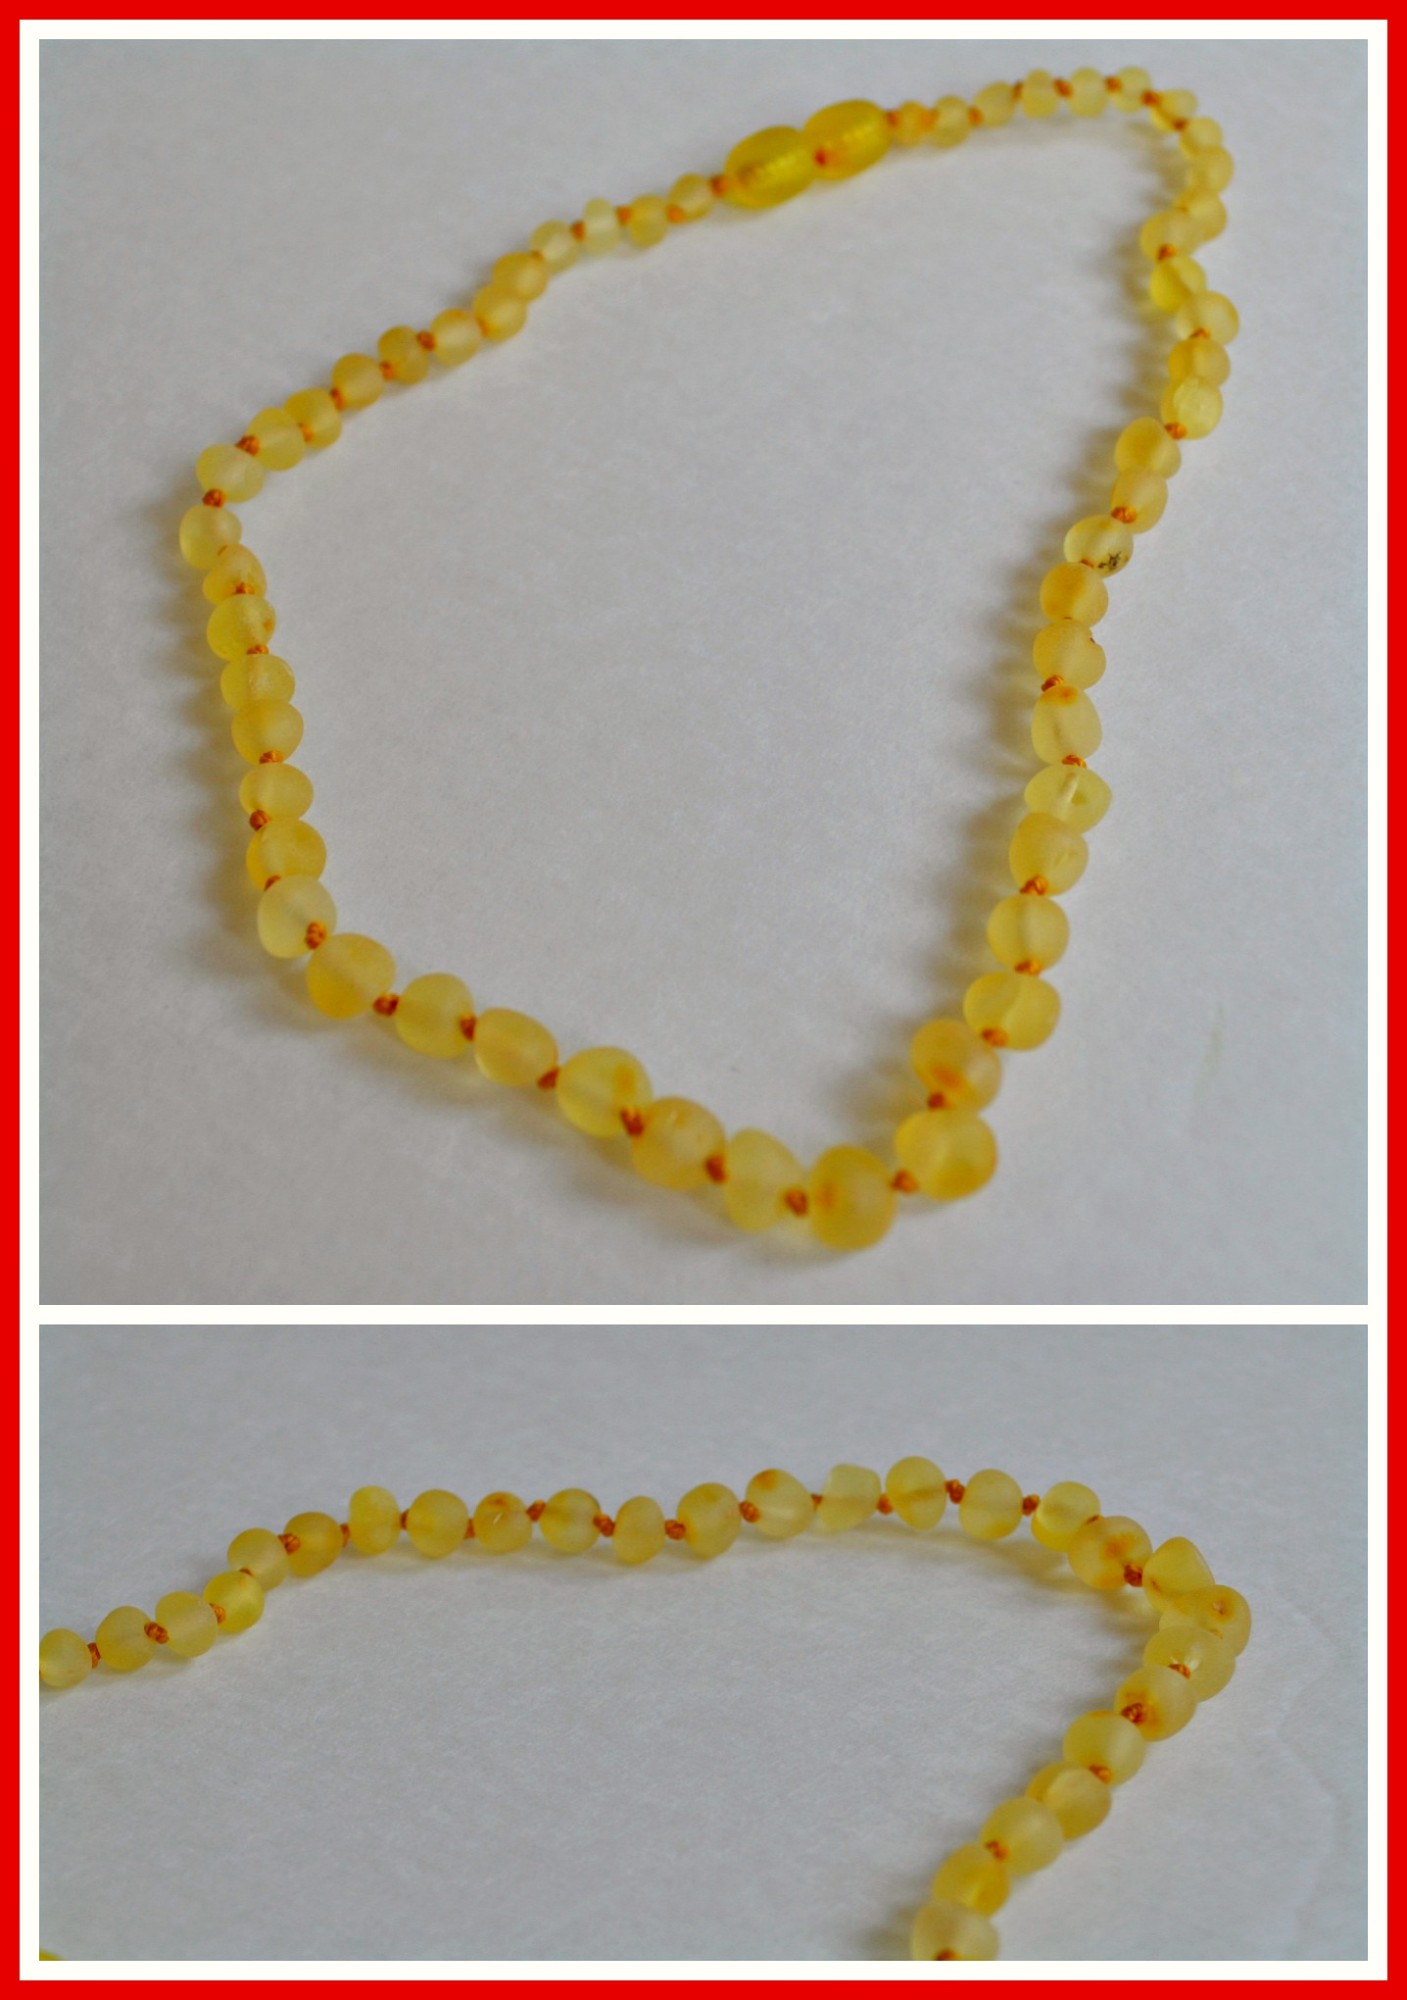 Amber For Babies: Amber Teething Necklace Review (Getting Ready For Baby Gift Guide)